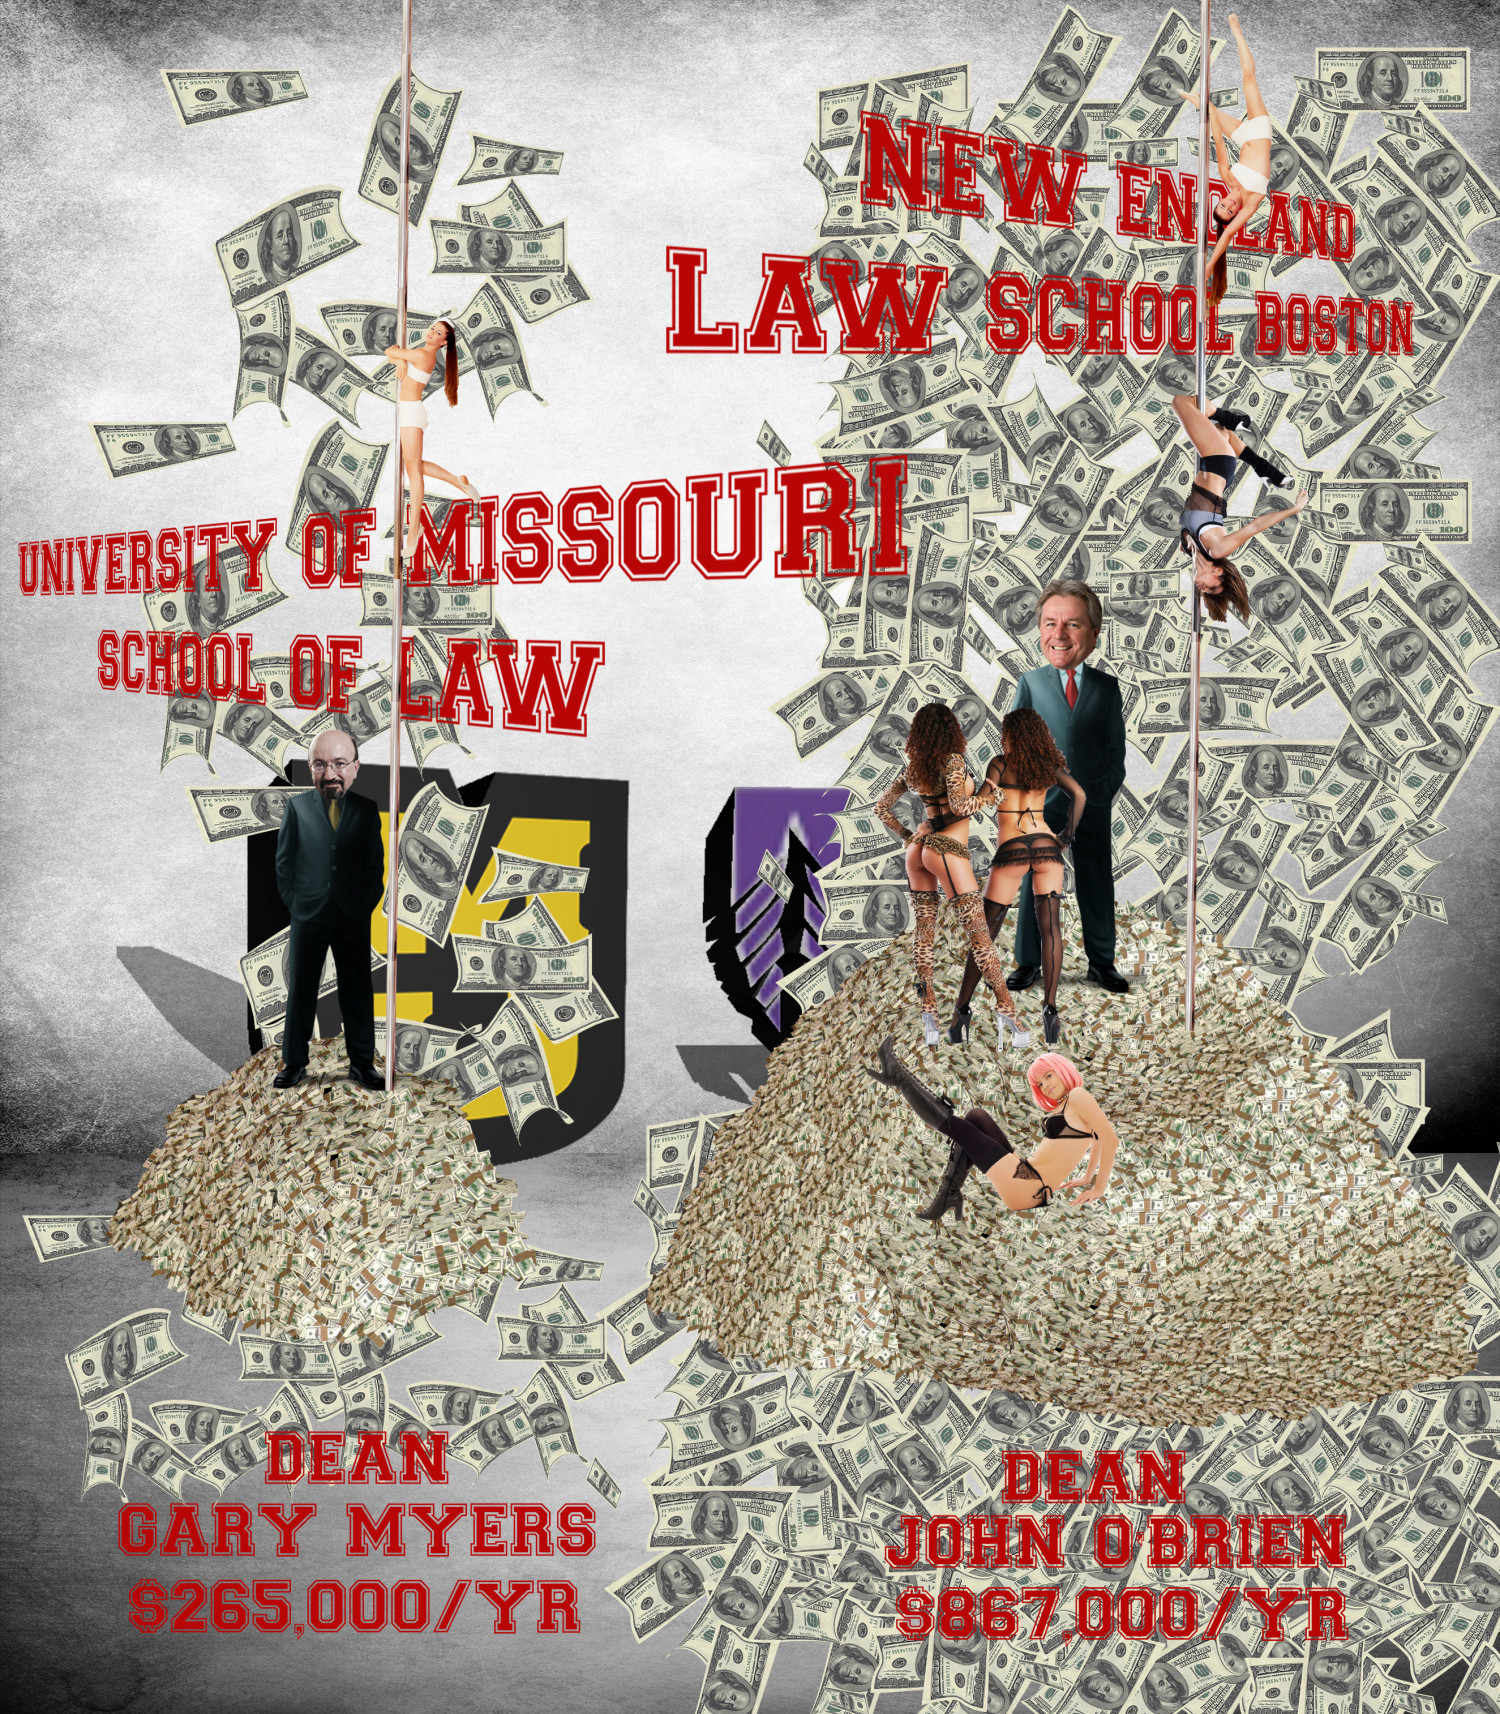 JOHN F. OBRIEN VS GARY MYERS, BATTLE OF THE LAW SCHOOL DEANS SALARIES Infographic